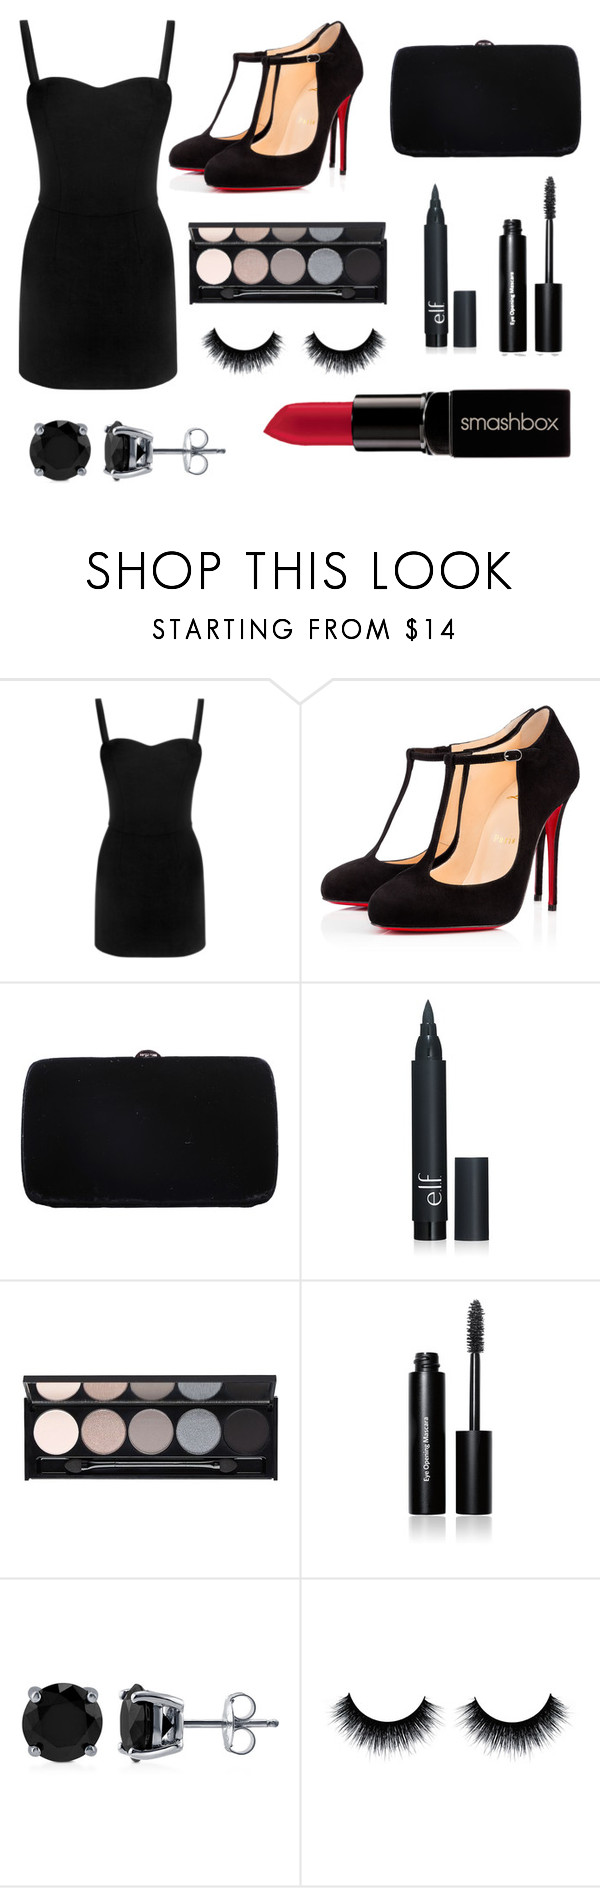 """Classic"" by chooseyourstyle321 on Polyvore featuring Alexander McQueen, Christian Louboutin, Sergio Rossi, Witchery, Bobbi Brown Cosmetics, BERRICLE, Smashbox, women's clothing, women's fashion and women"